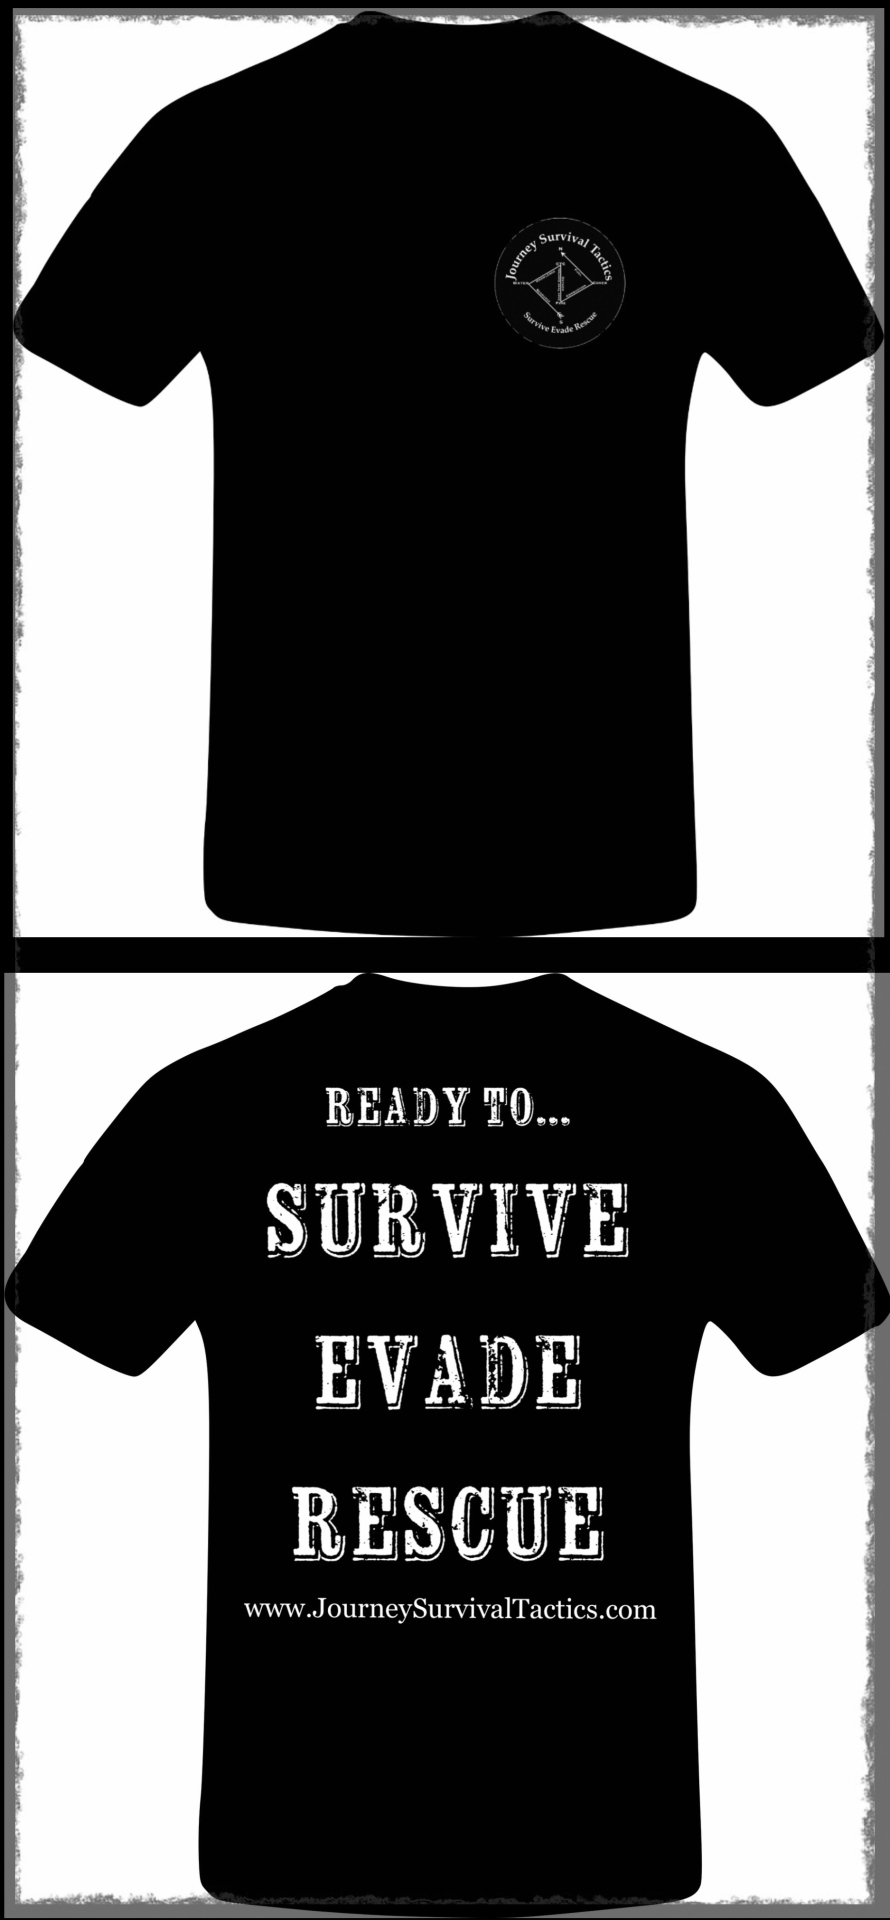 JSTs_survival-t-shirt_survival-apparel_tactical_black.